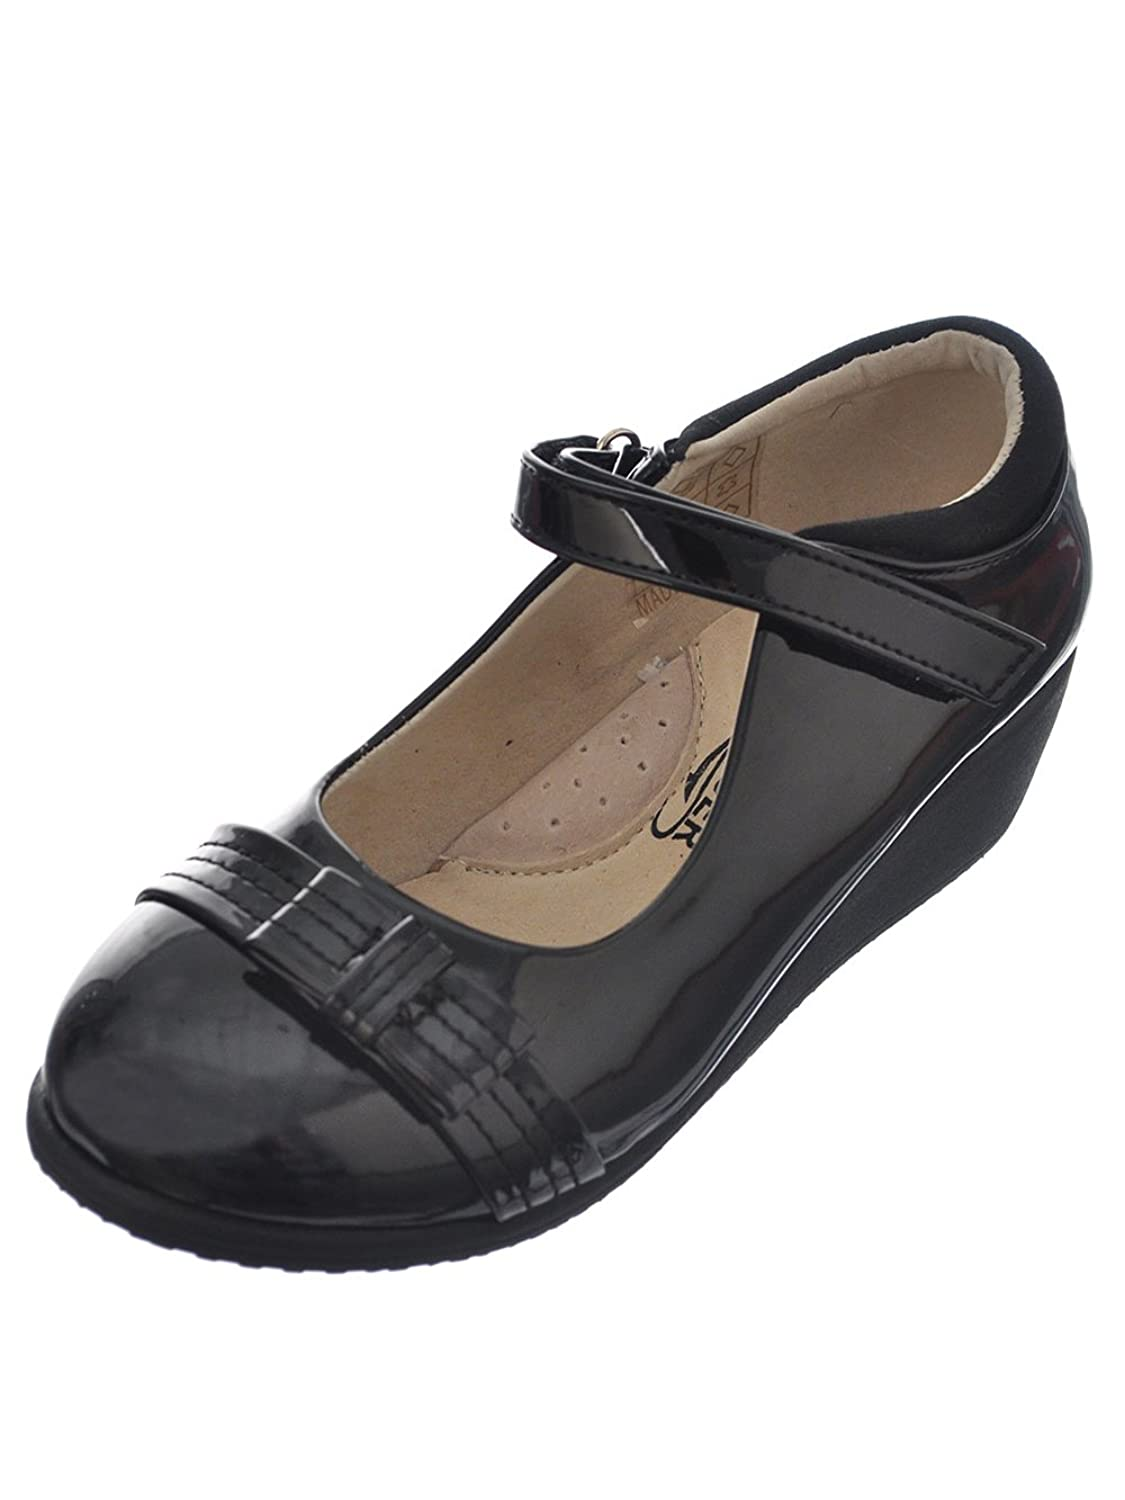 Easy Strider Girls'Stitched Patent Bow Mary Janes